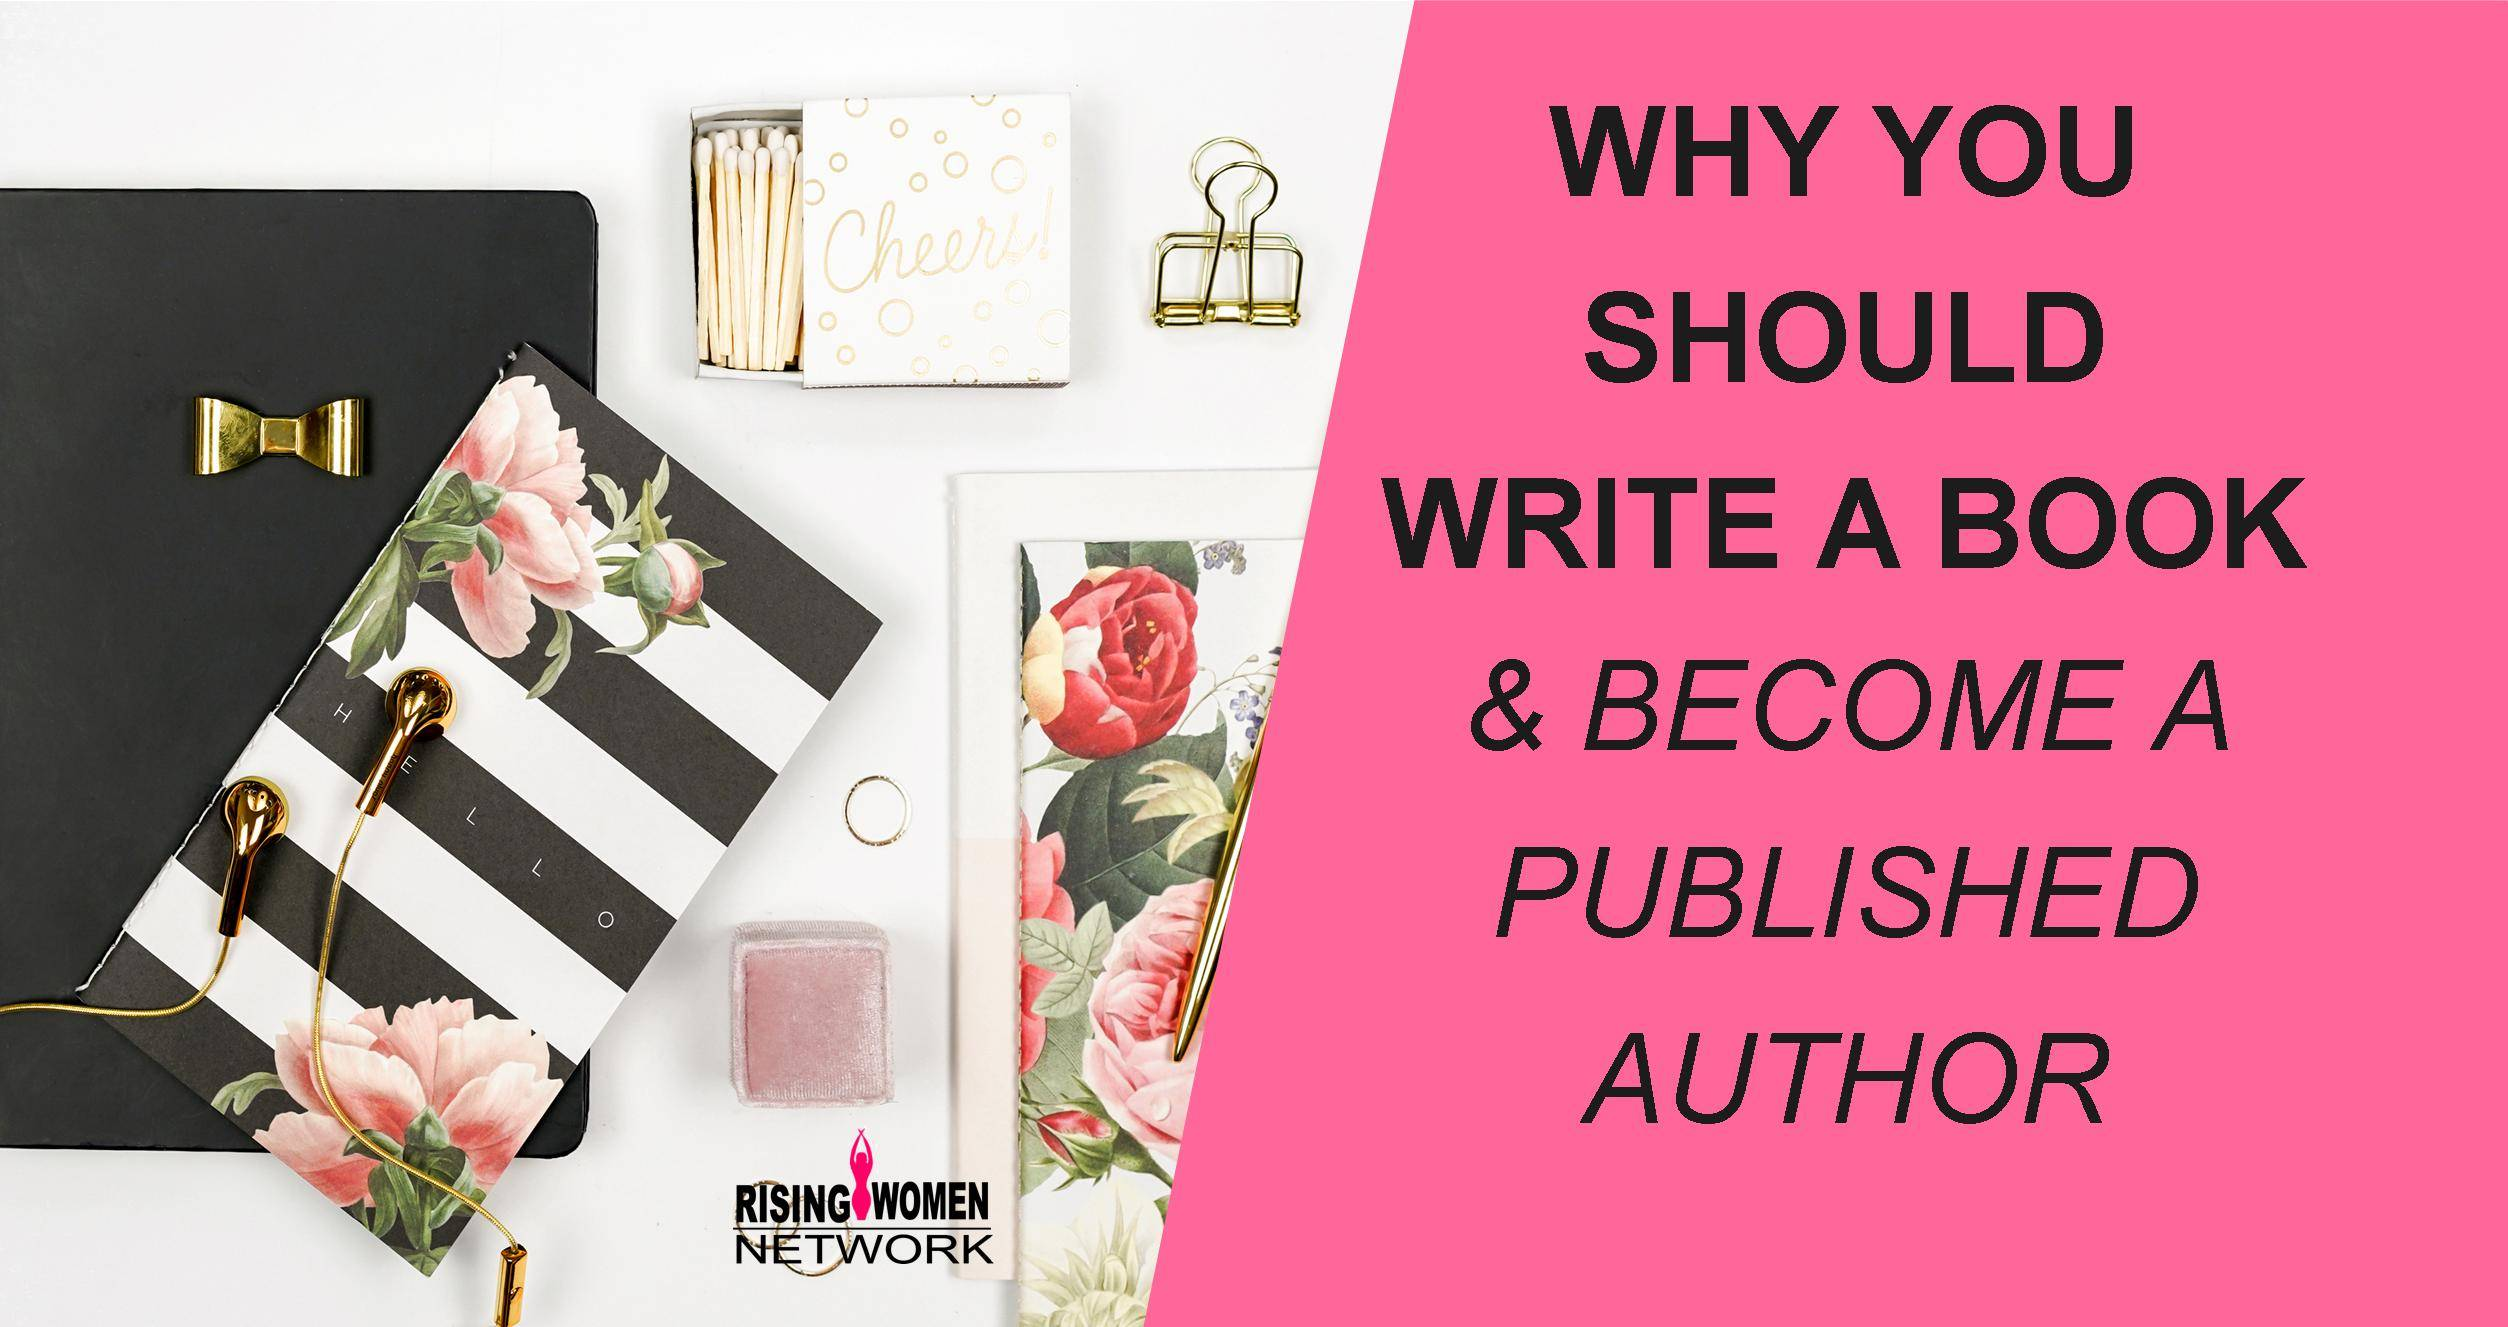 Why You Should Write A Book & Become A Published Author